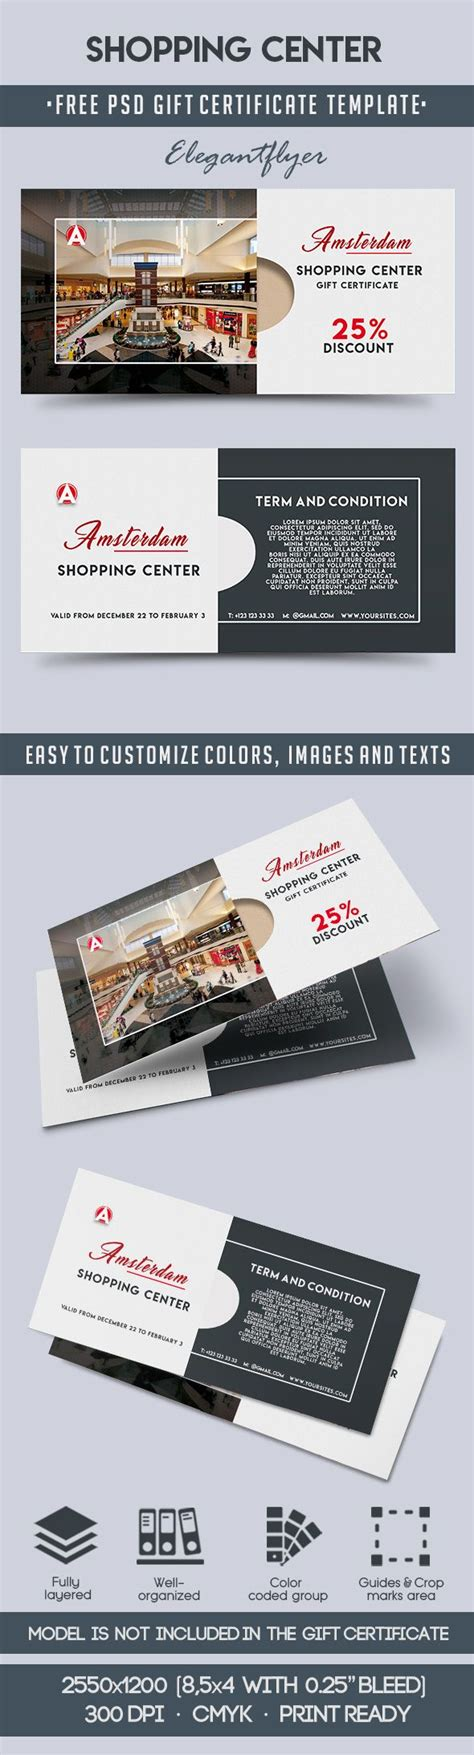 gift card template free psd shopping center free gift certificate psd template by